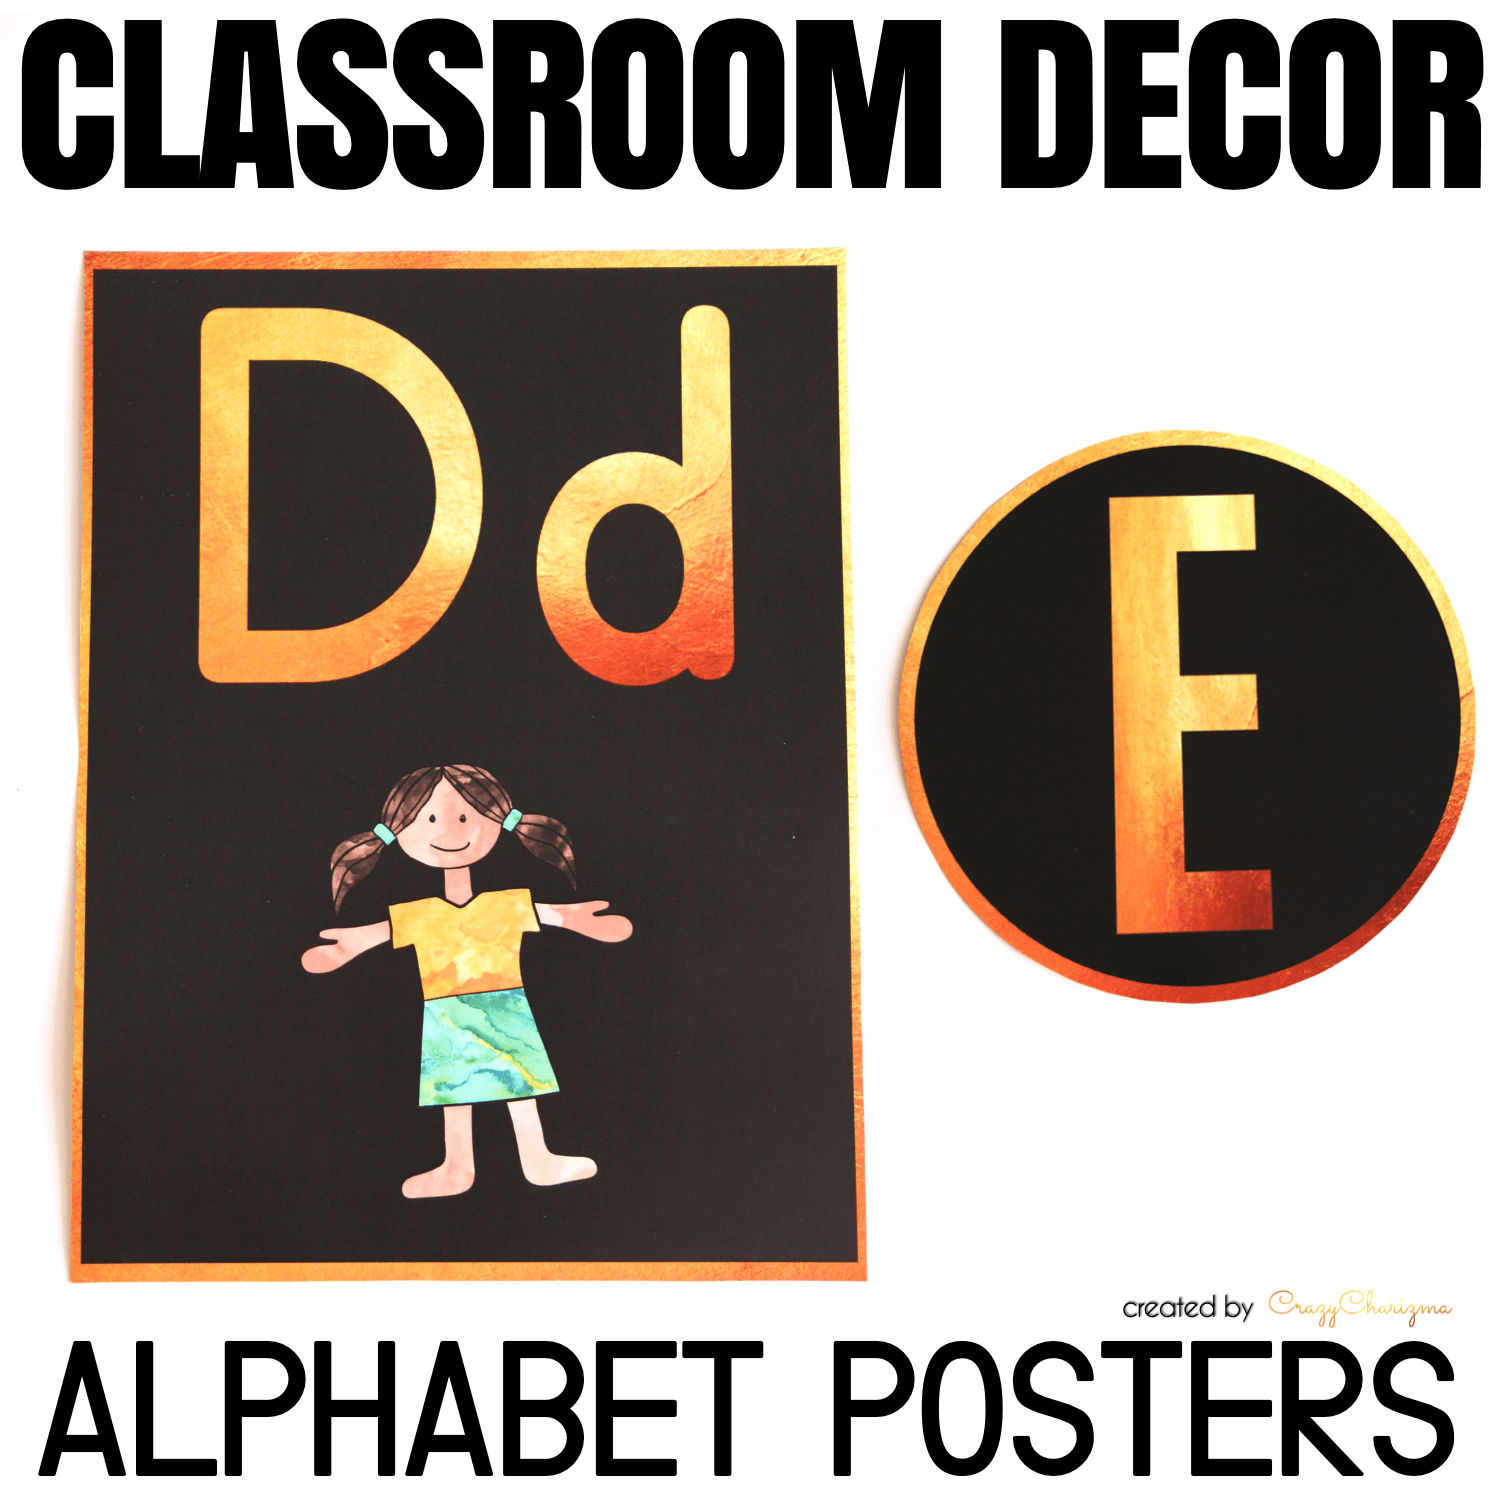 Decorate your classroom this year with this stylish BLACK and GOLD decor set. Find inside vibrant and bright Alphabet Posters and Letters.